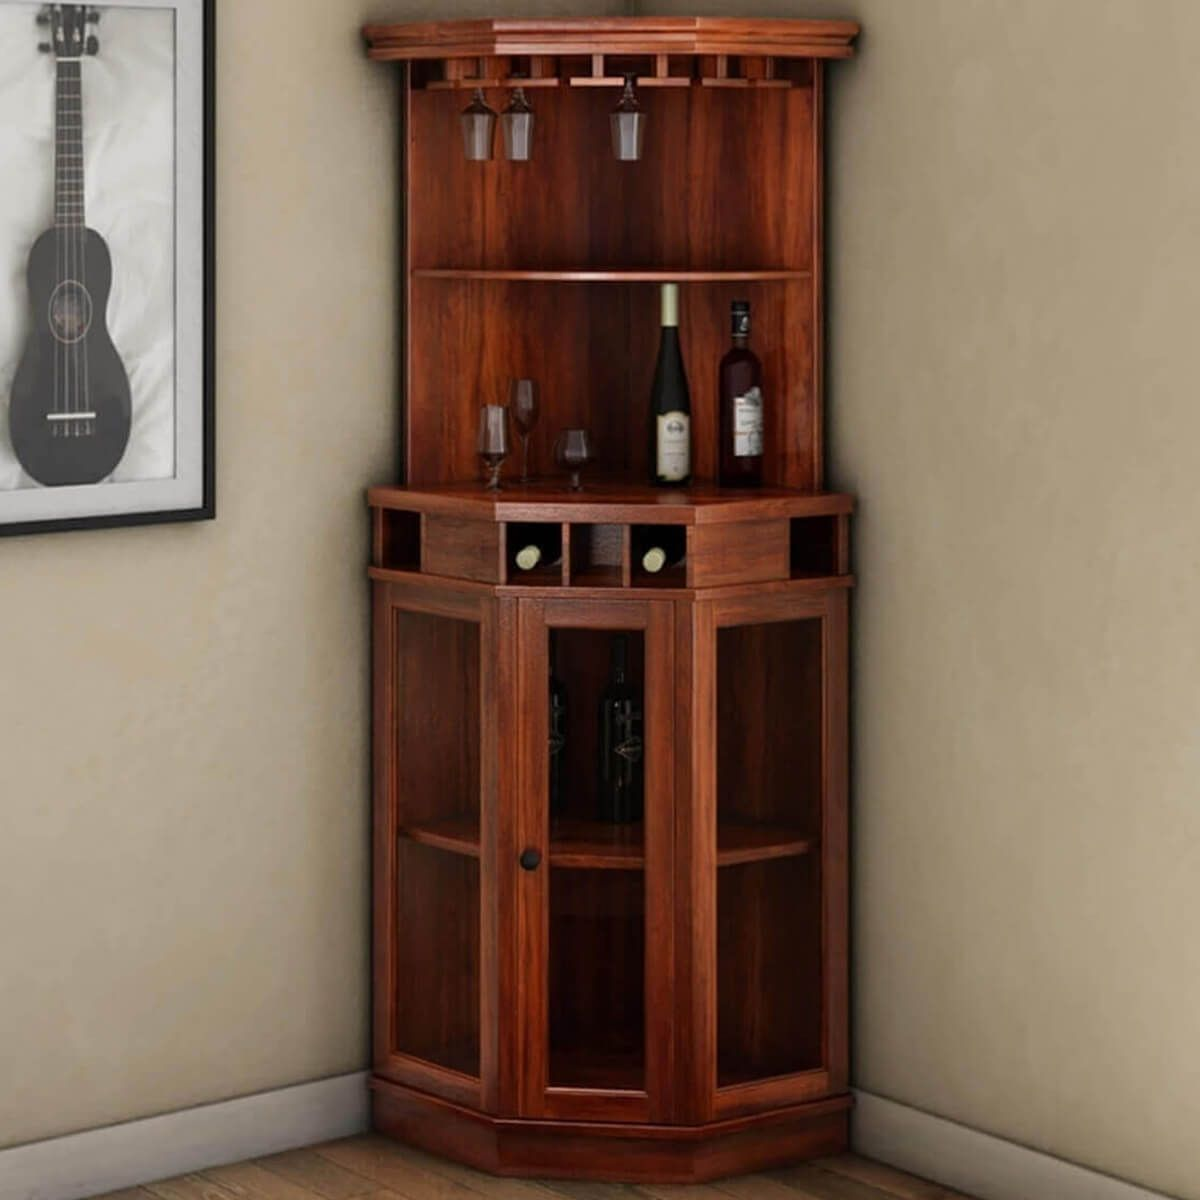 Solid Wood Corner Liquor Display Cabinet With Wine Storage In 2020 Corner Liquor Cabinet Corner Wine Cabinet Glass Cabinet Doors